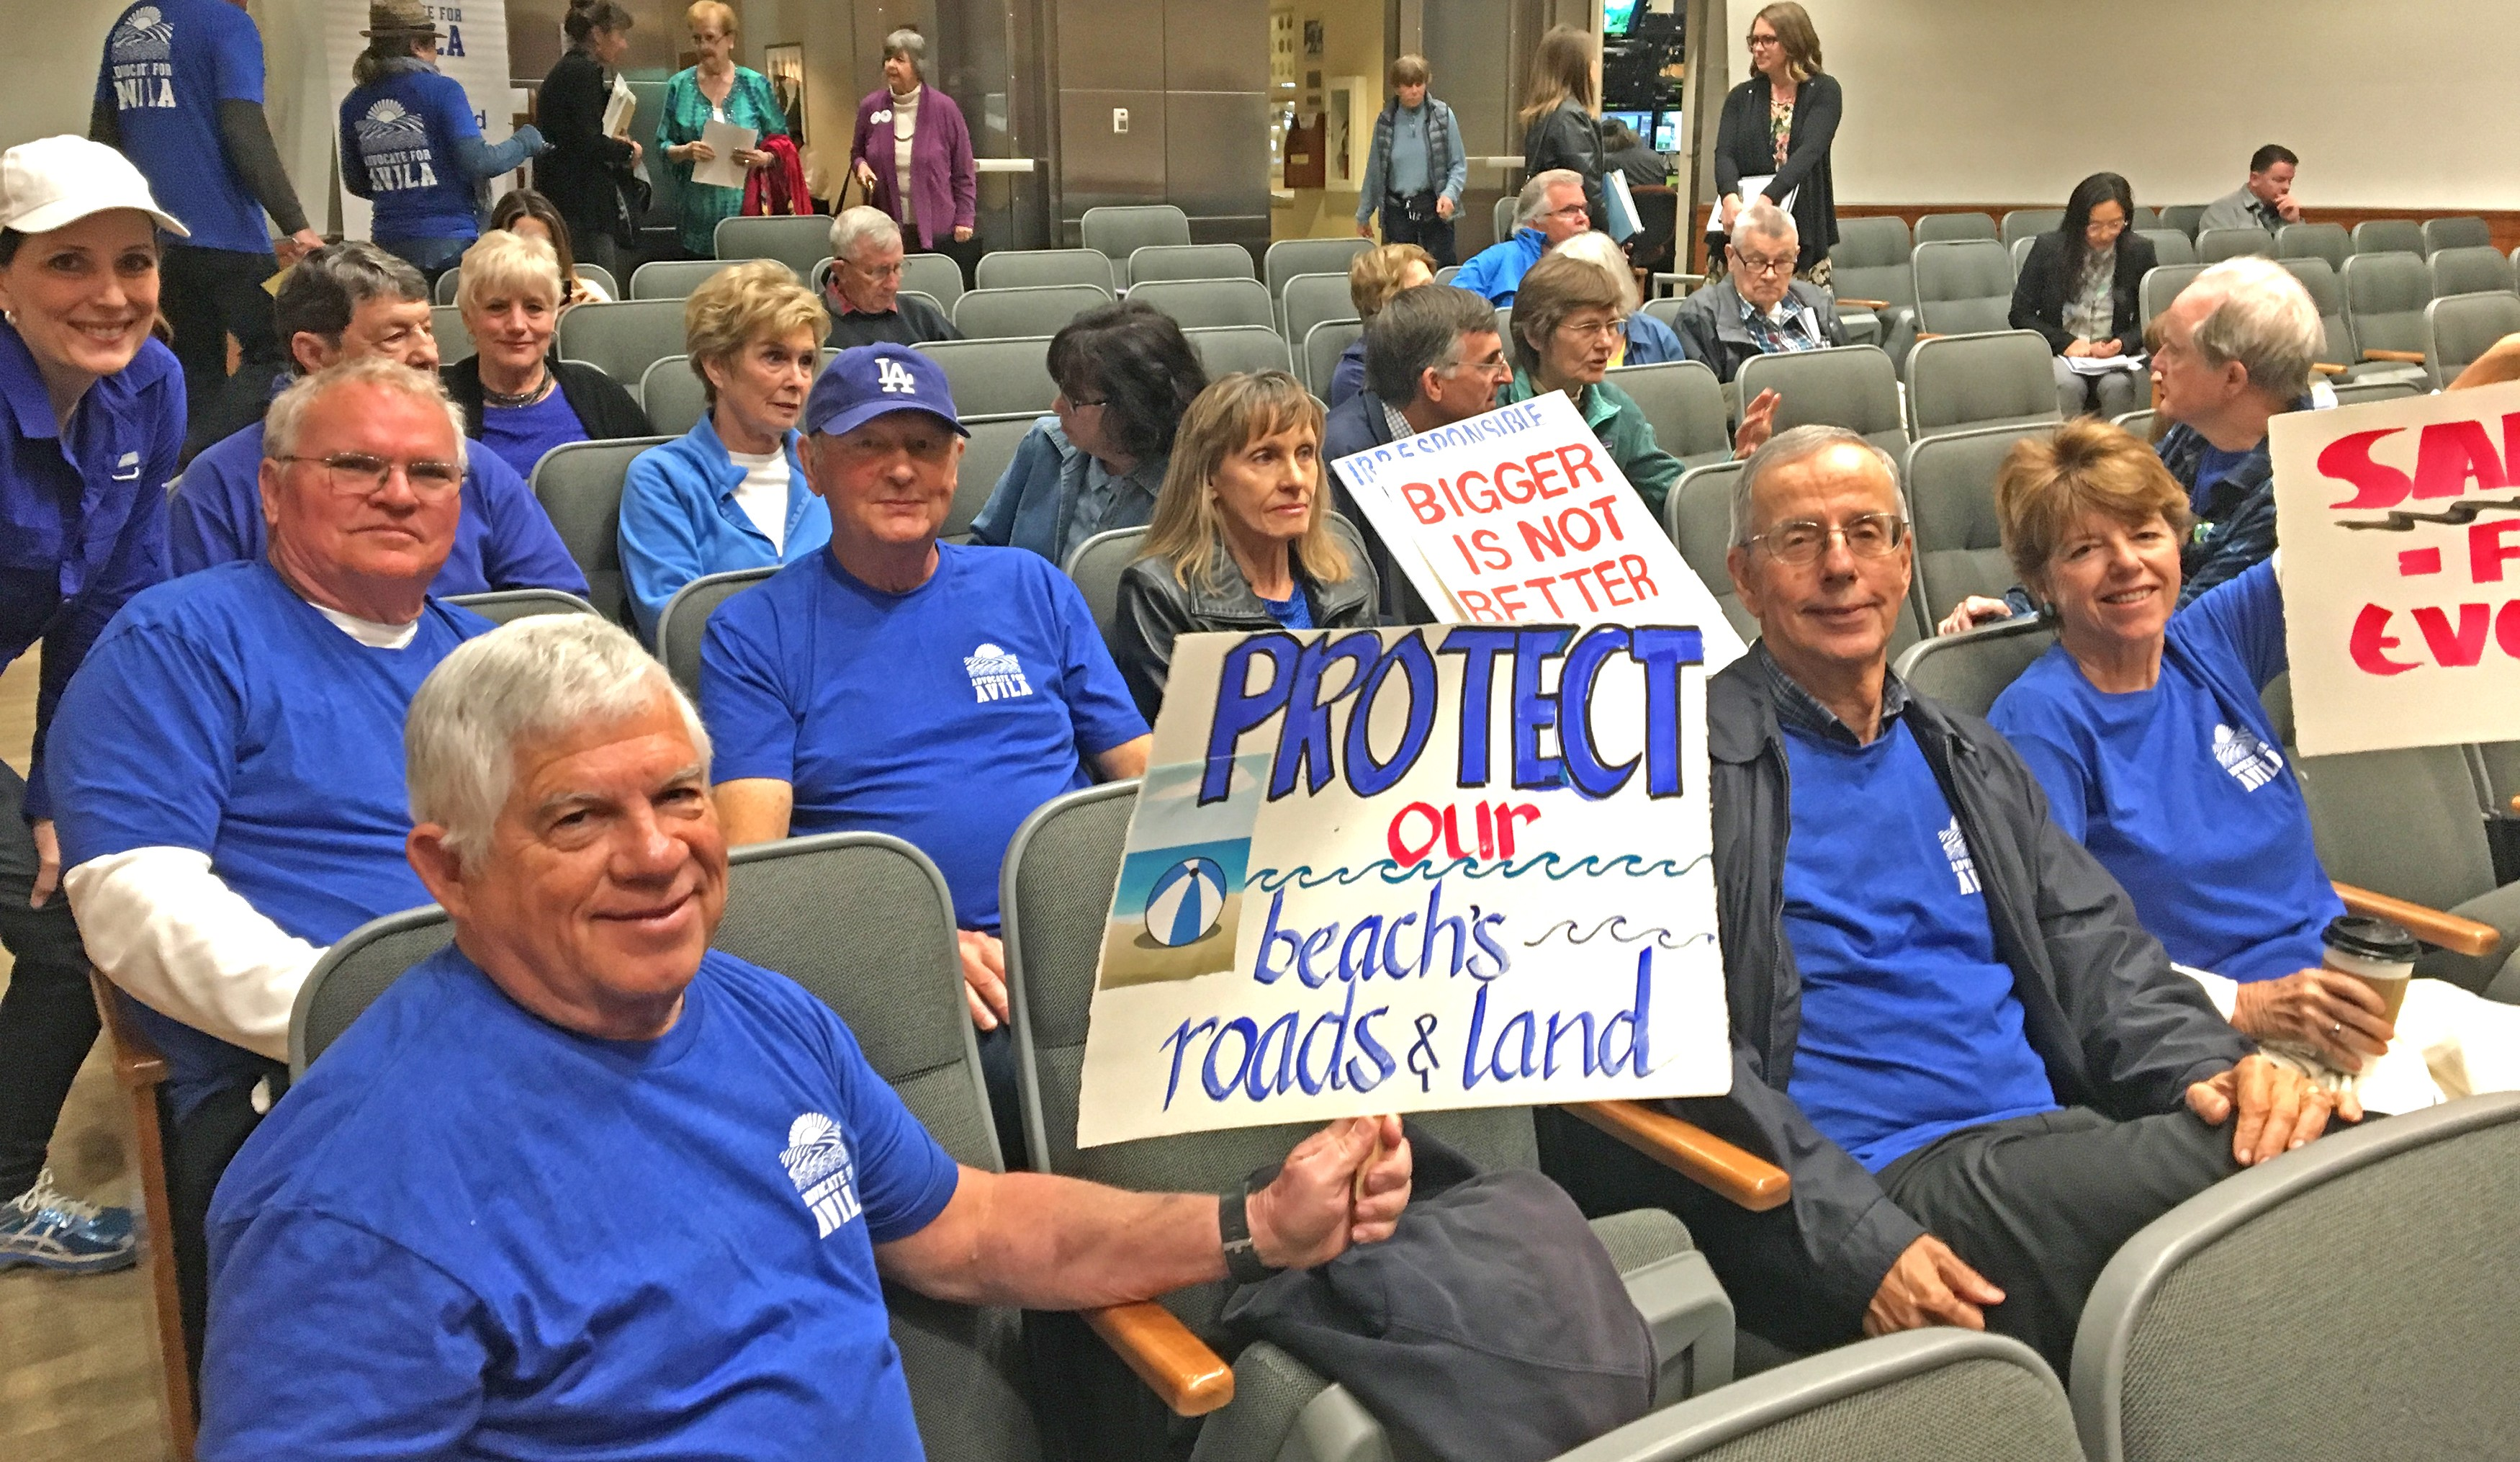 ON THE LOOK OUT Avila Beach residents showed up to the April 17 SLO County Board of Supervisors meeting to voice their disagreement with large development in the area. - PHOTO COURTESY OF BETTY HARTIG